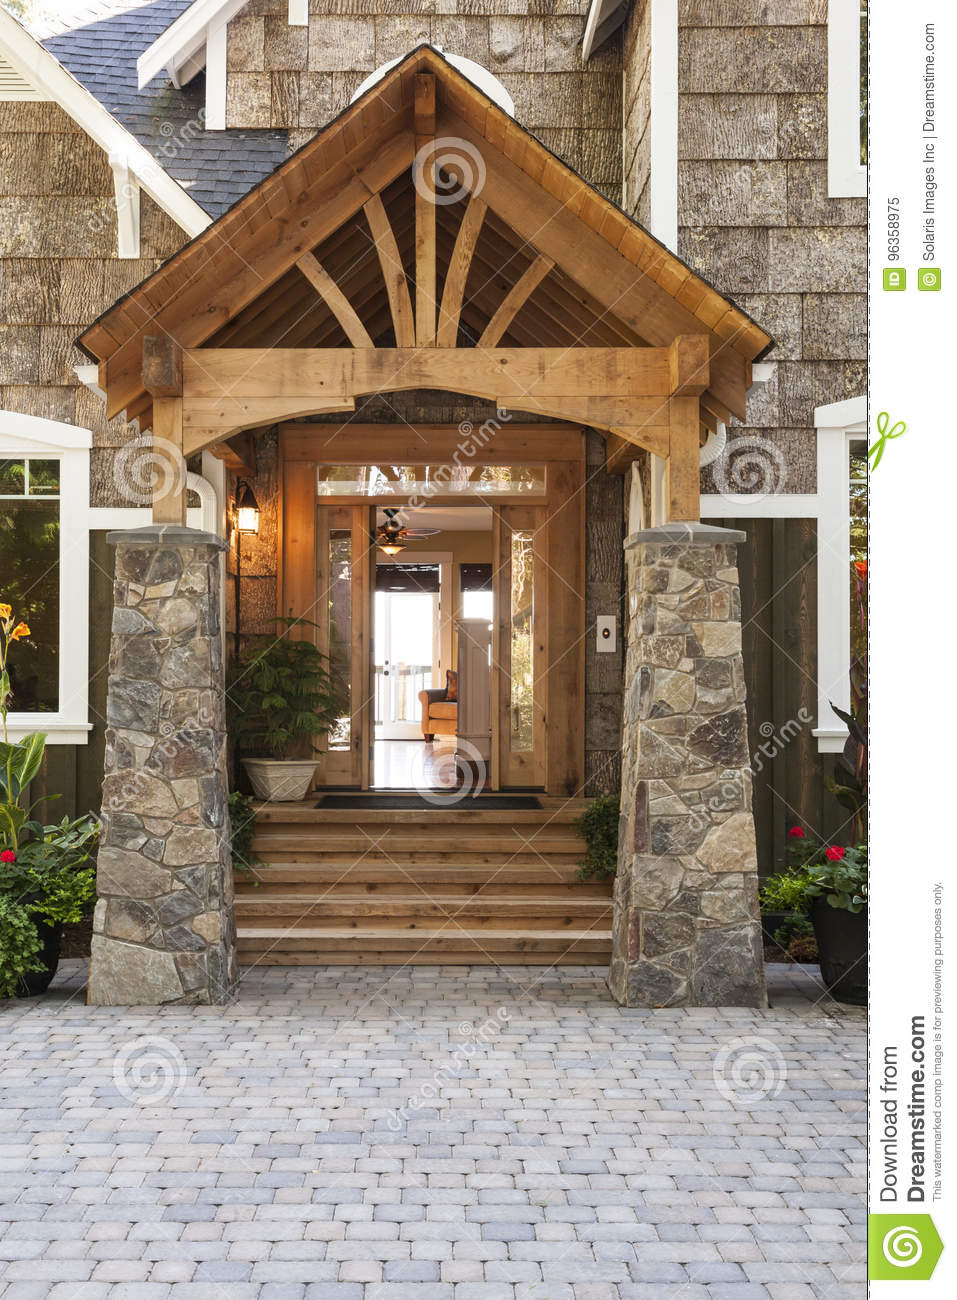 exterior porch front door entrance to beautiful upscale country house high quality wood stone building materials